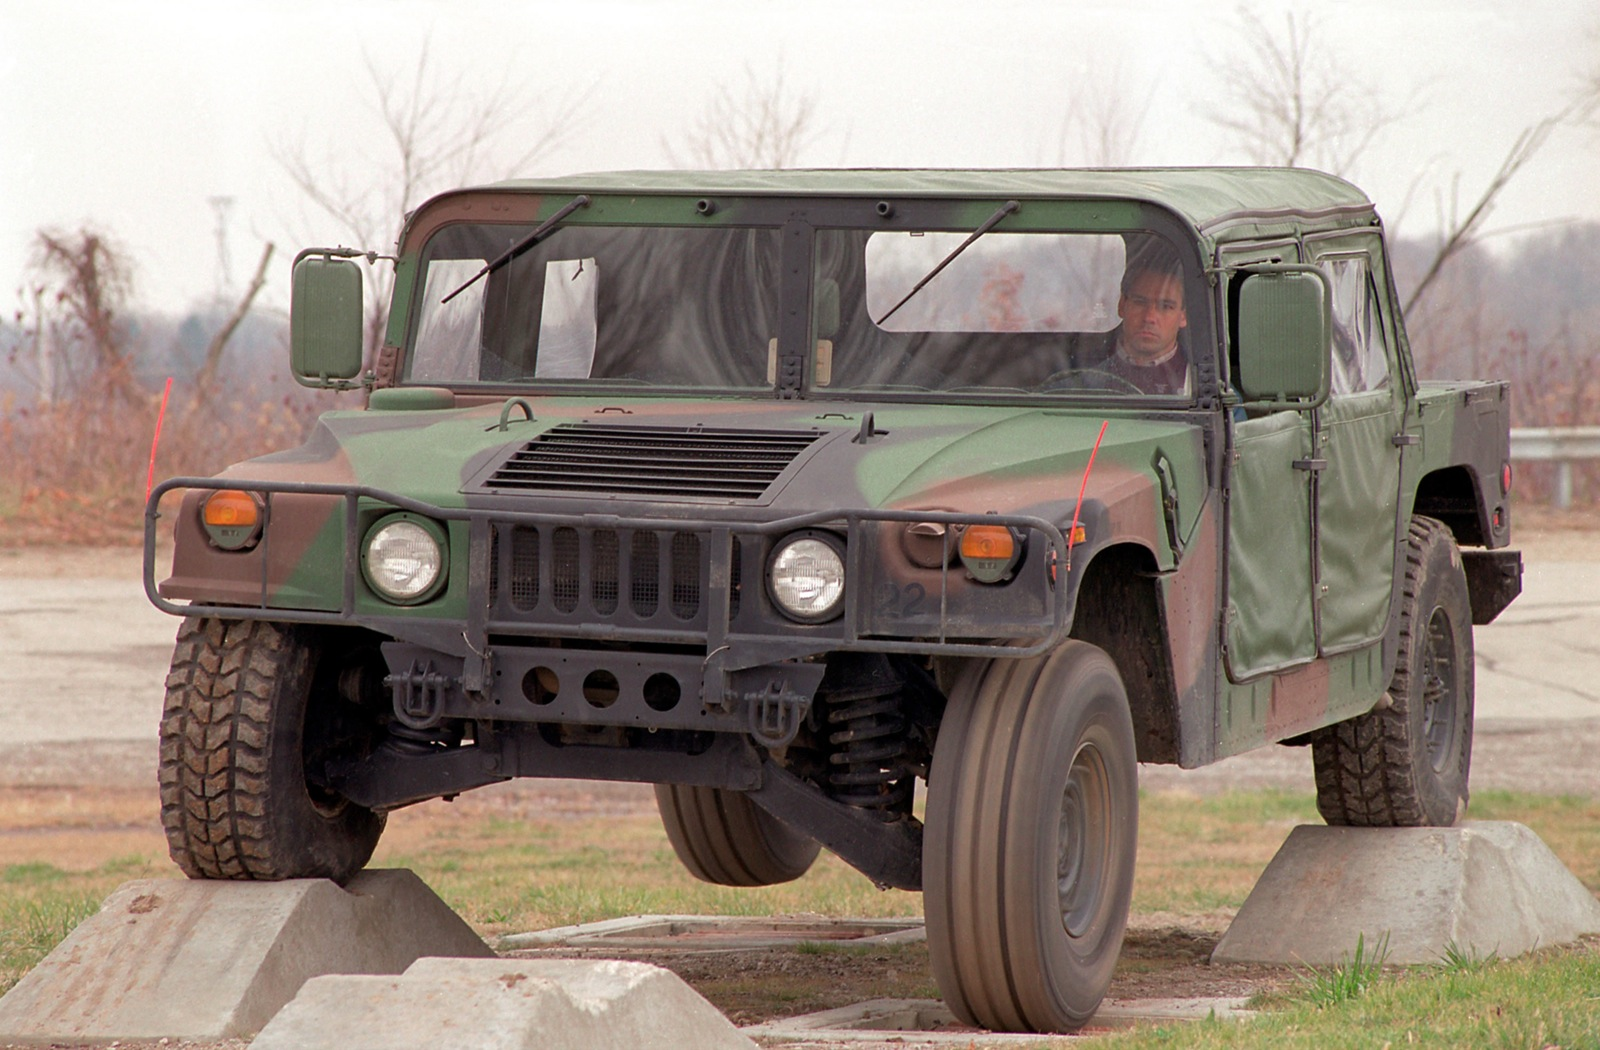 Audi Build Your Own >> Under Consideration: Build-Your-Own Humvee Kit From AM General